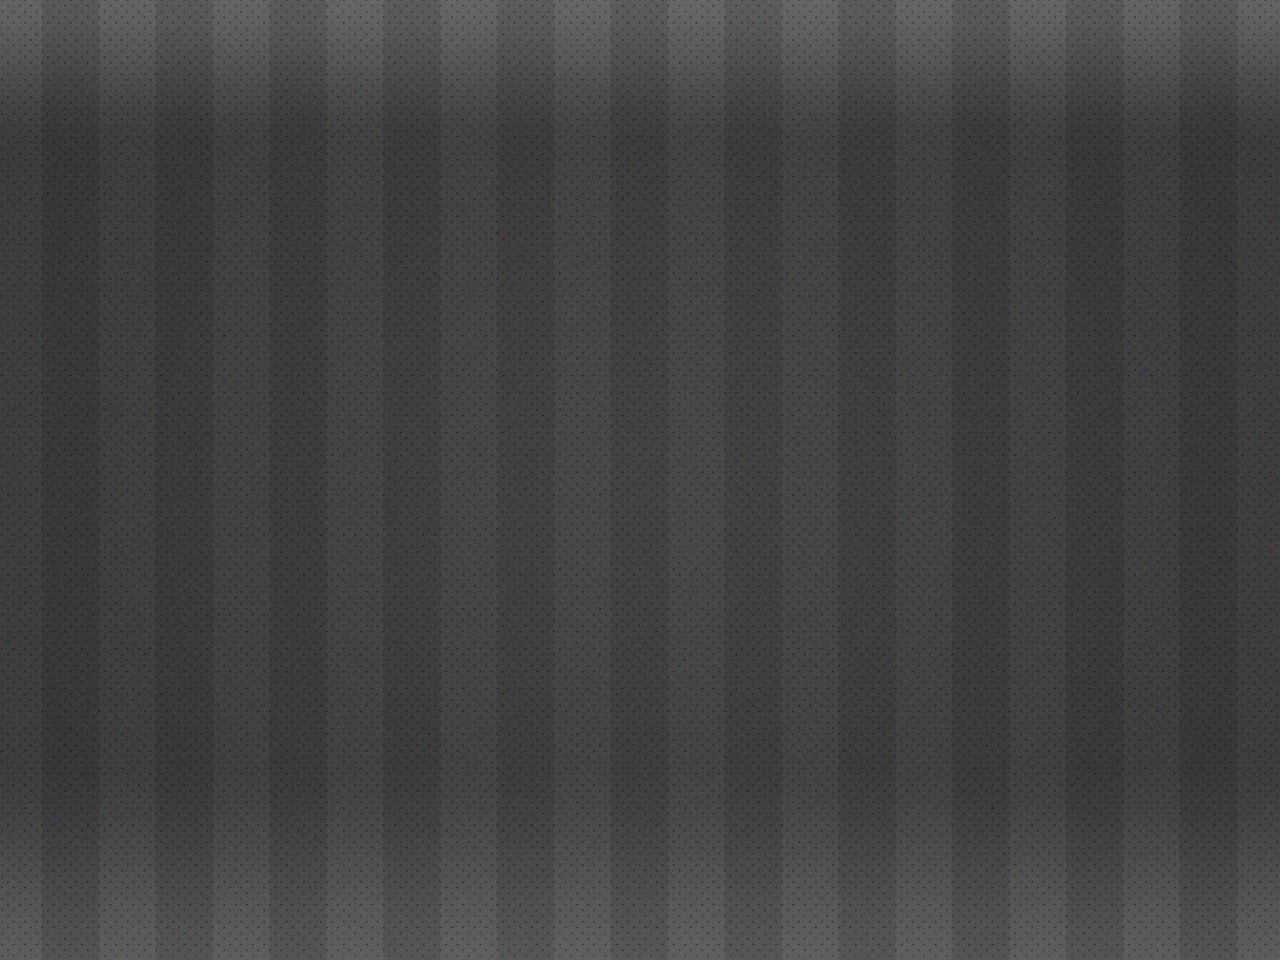 1280x960 gray stripes pattern desktop pc and mac wallpaper for Grey patterned wallpaper